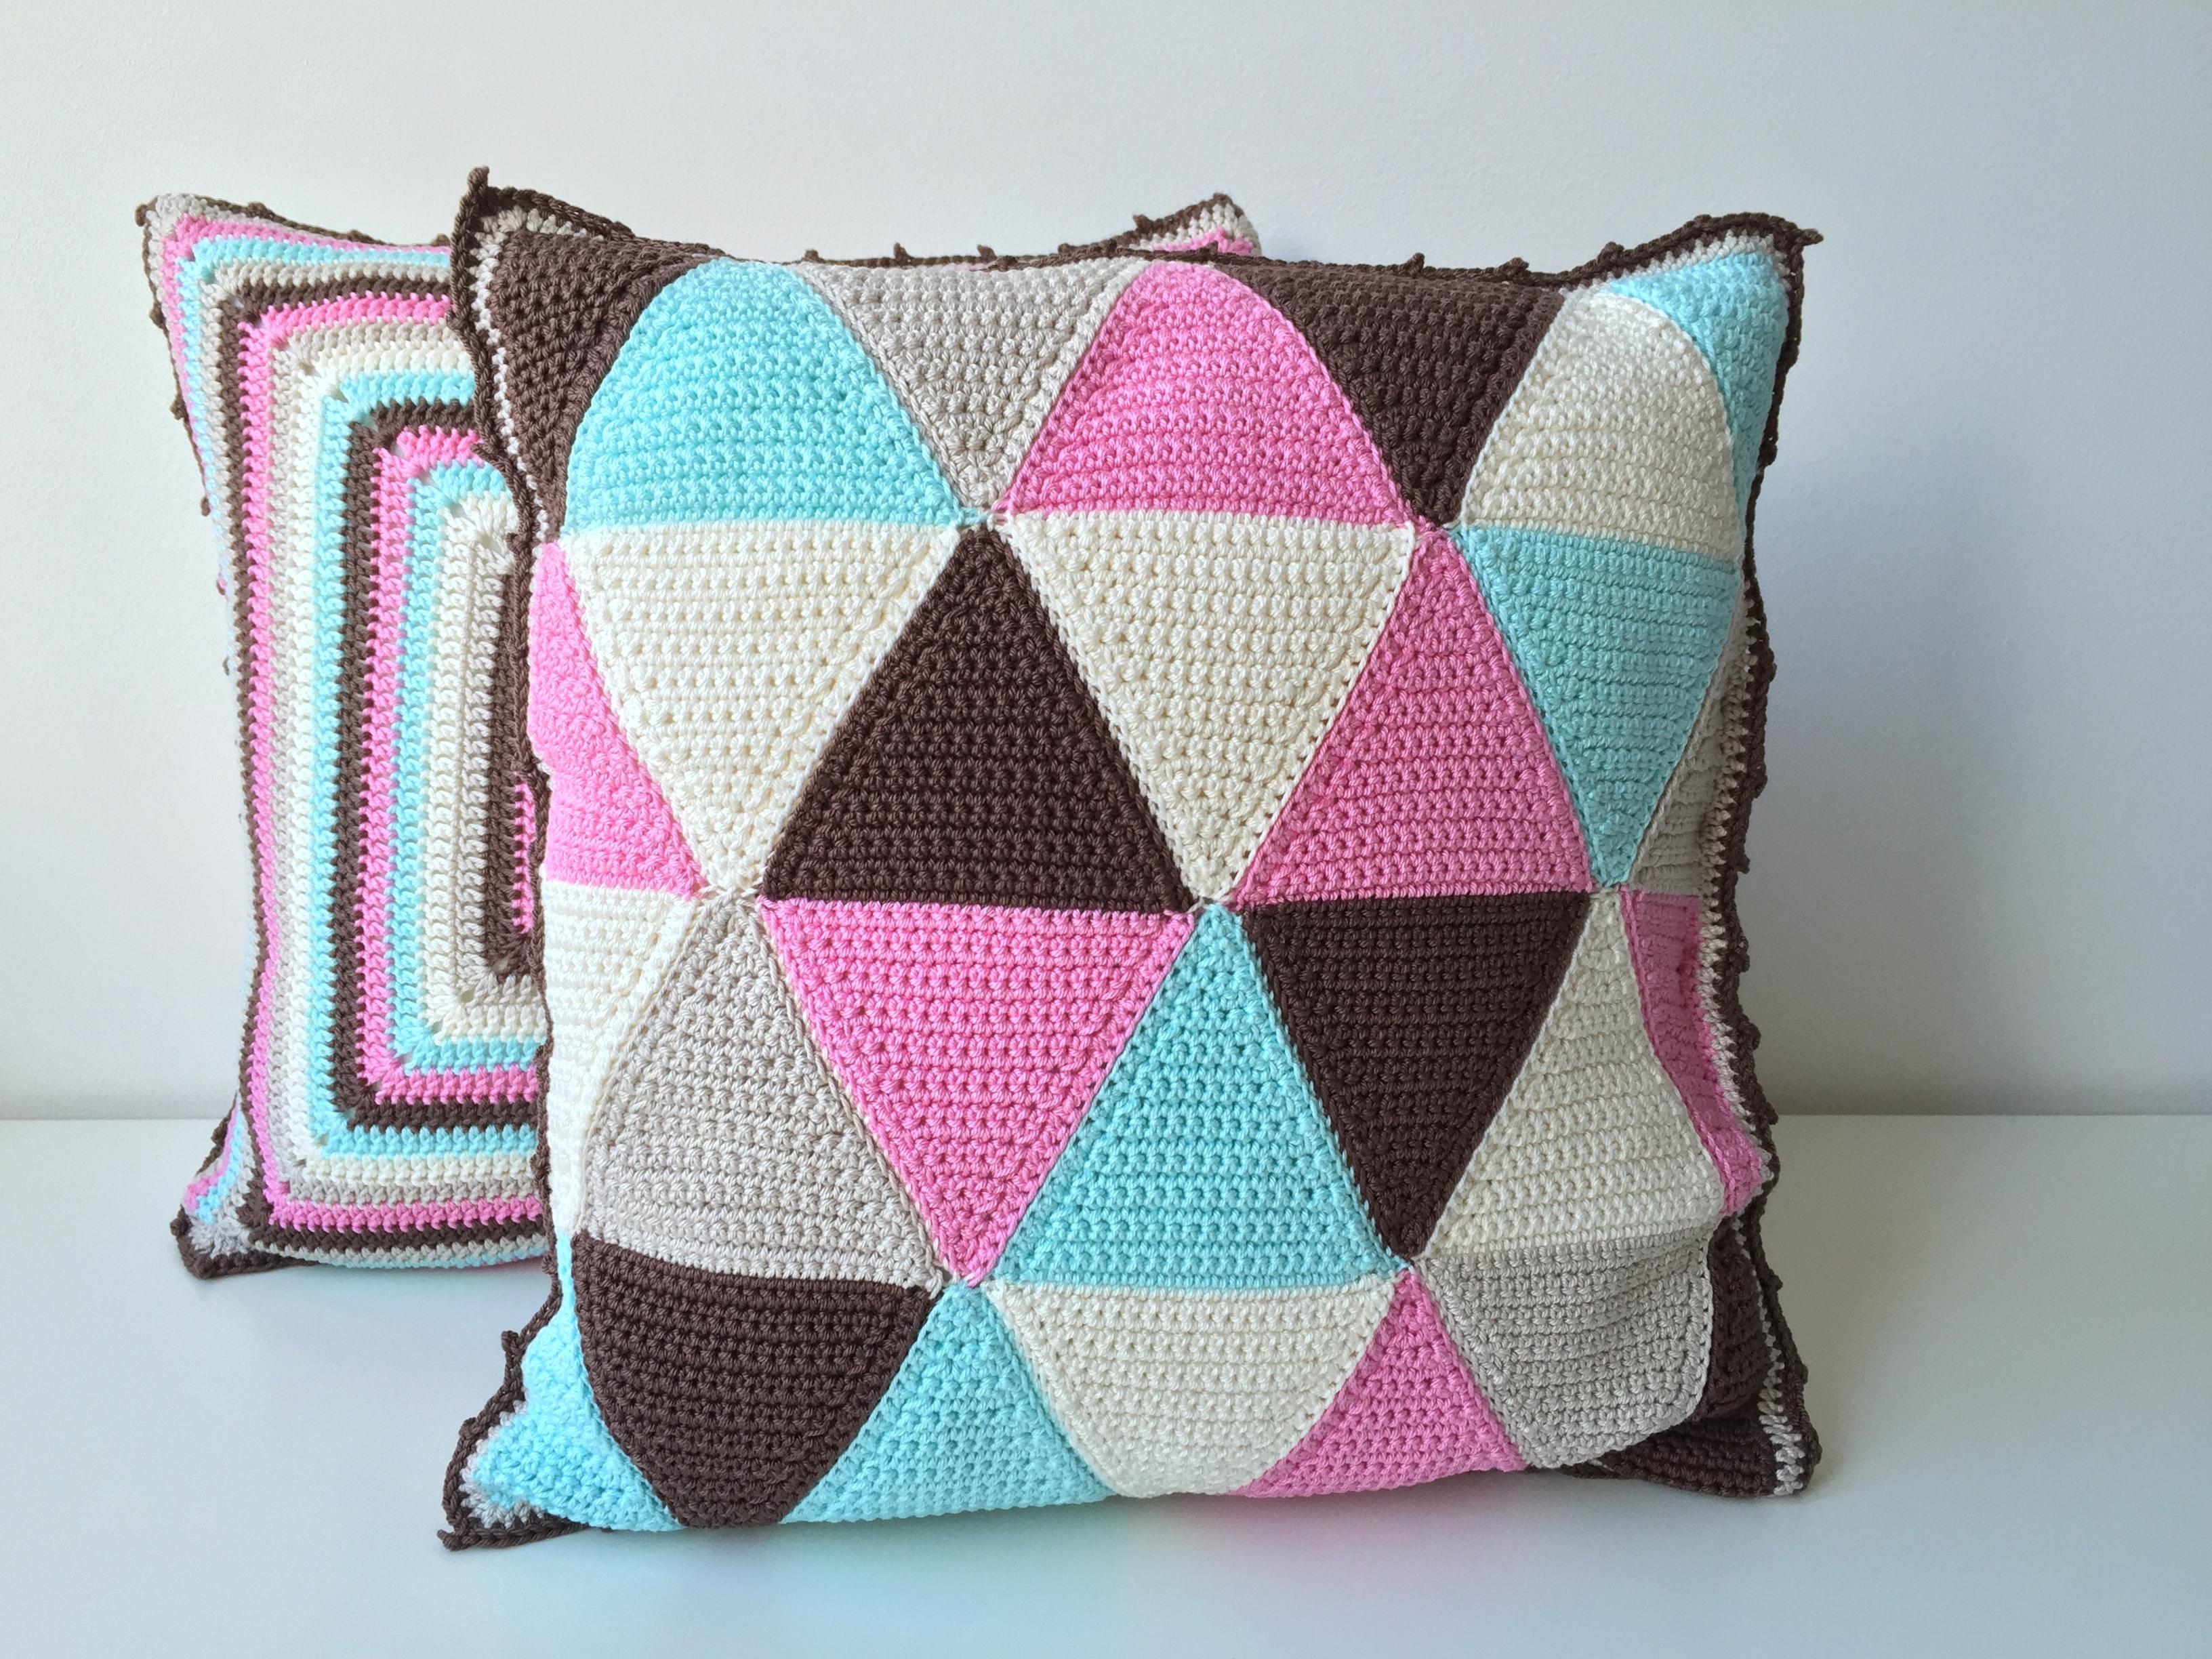 maRRose - CCC - The Gelato Gemini Triangle Cushions-37